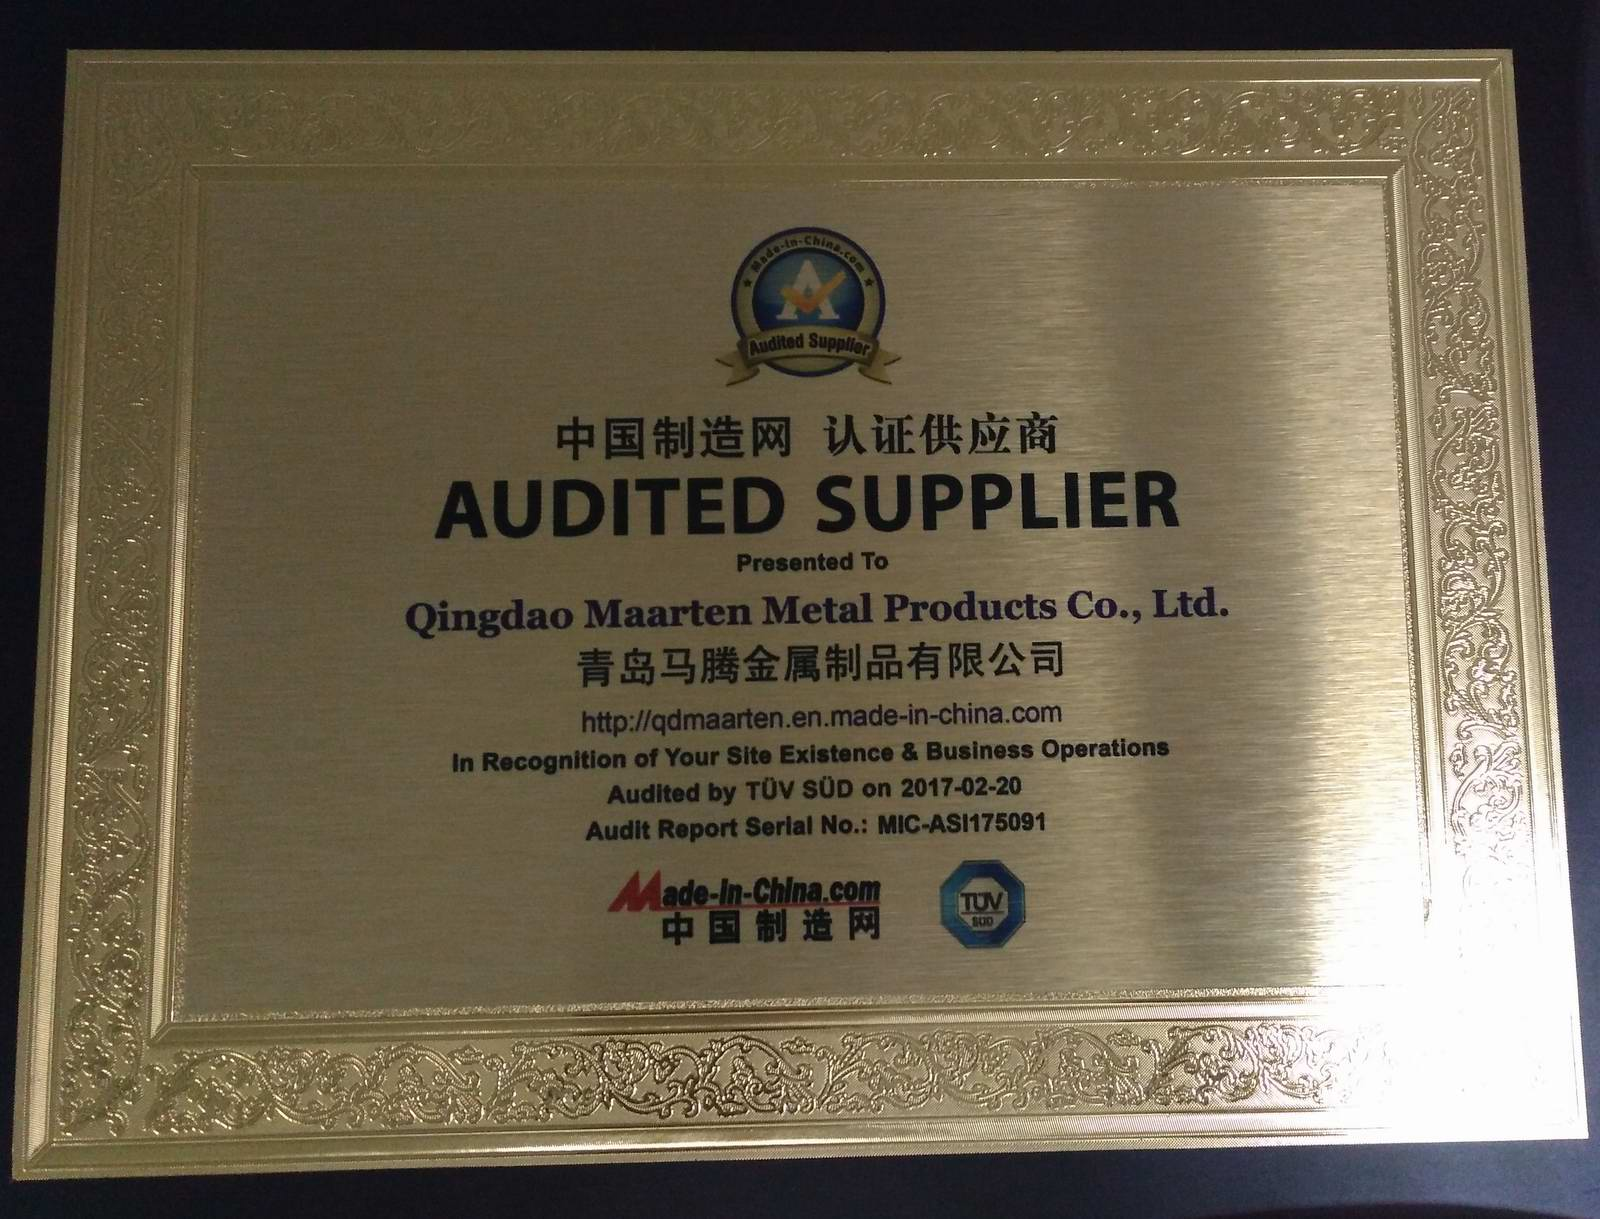 Made in china Certificate of accreditation